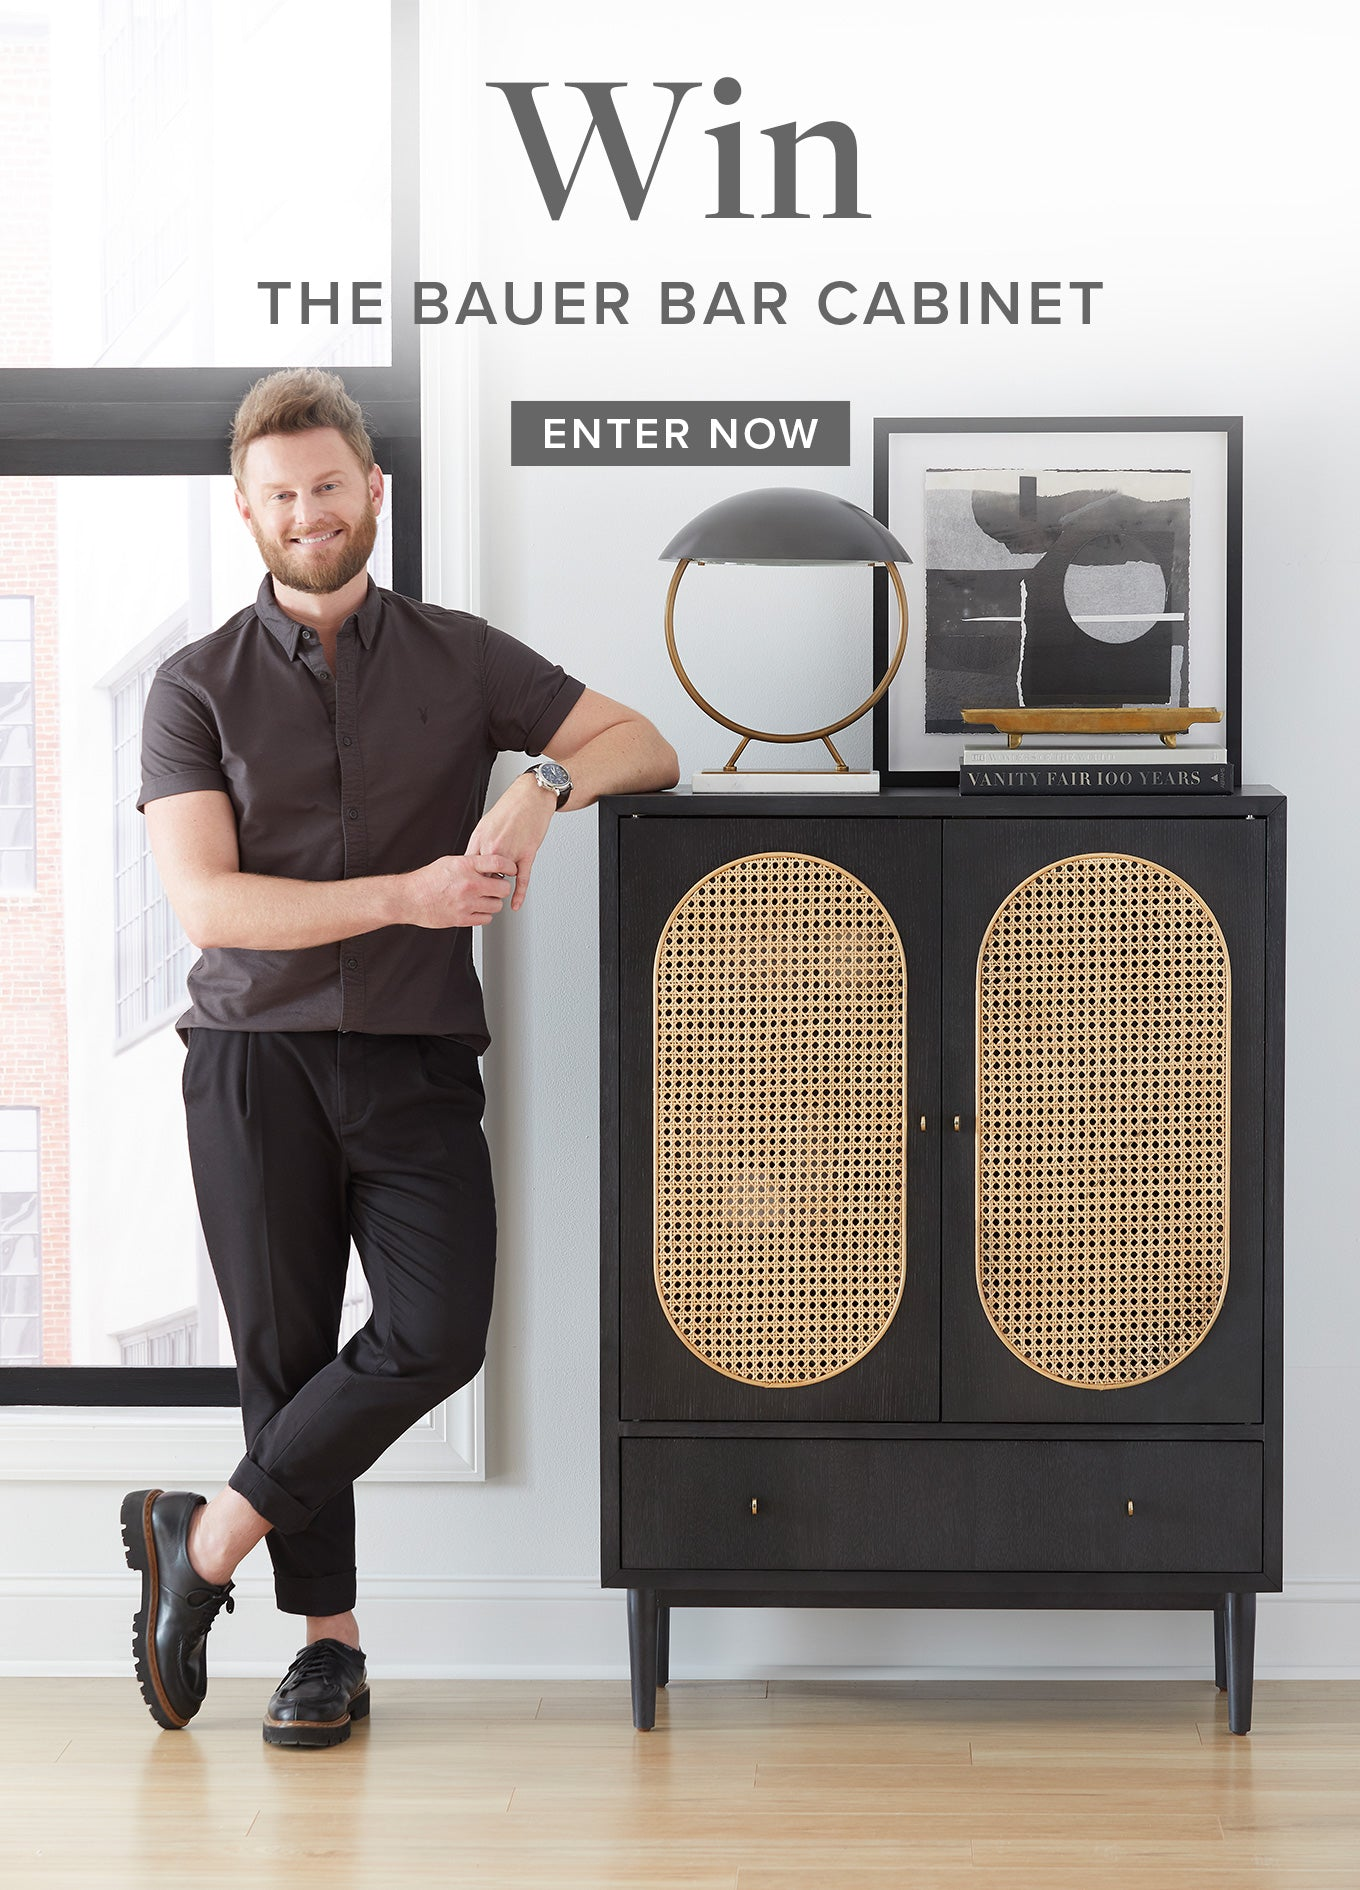 Bauer Bar Cabinet Competition